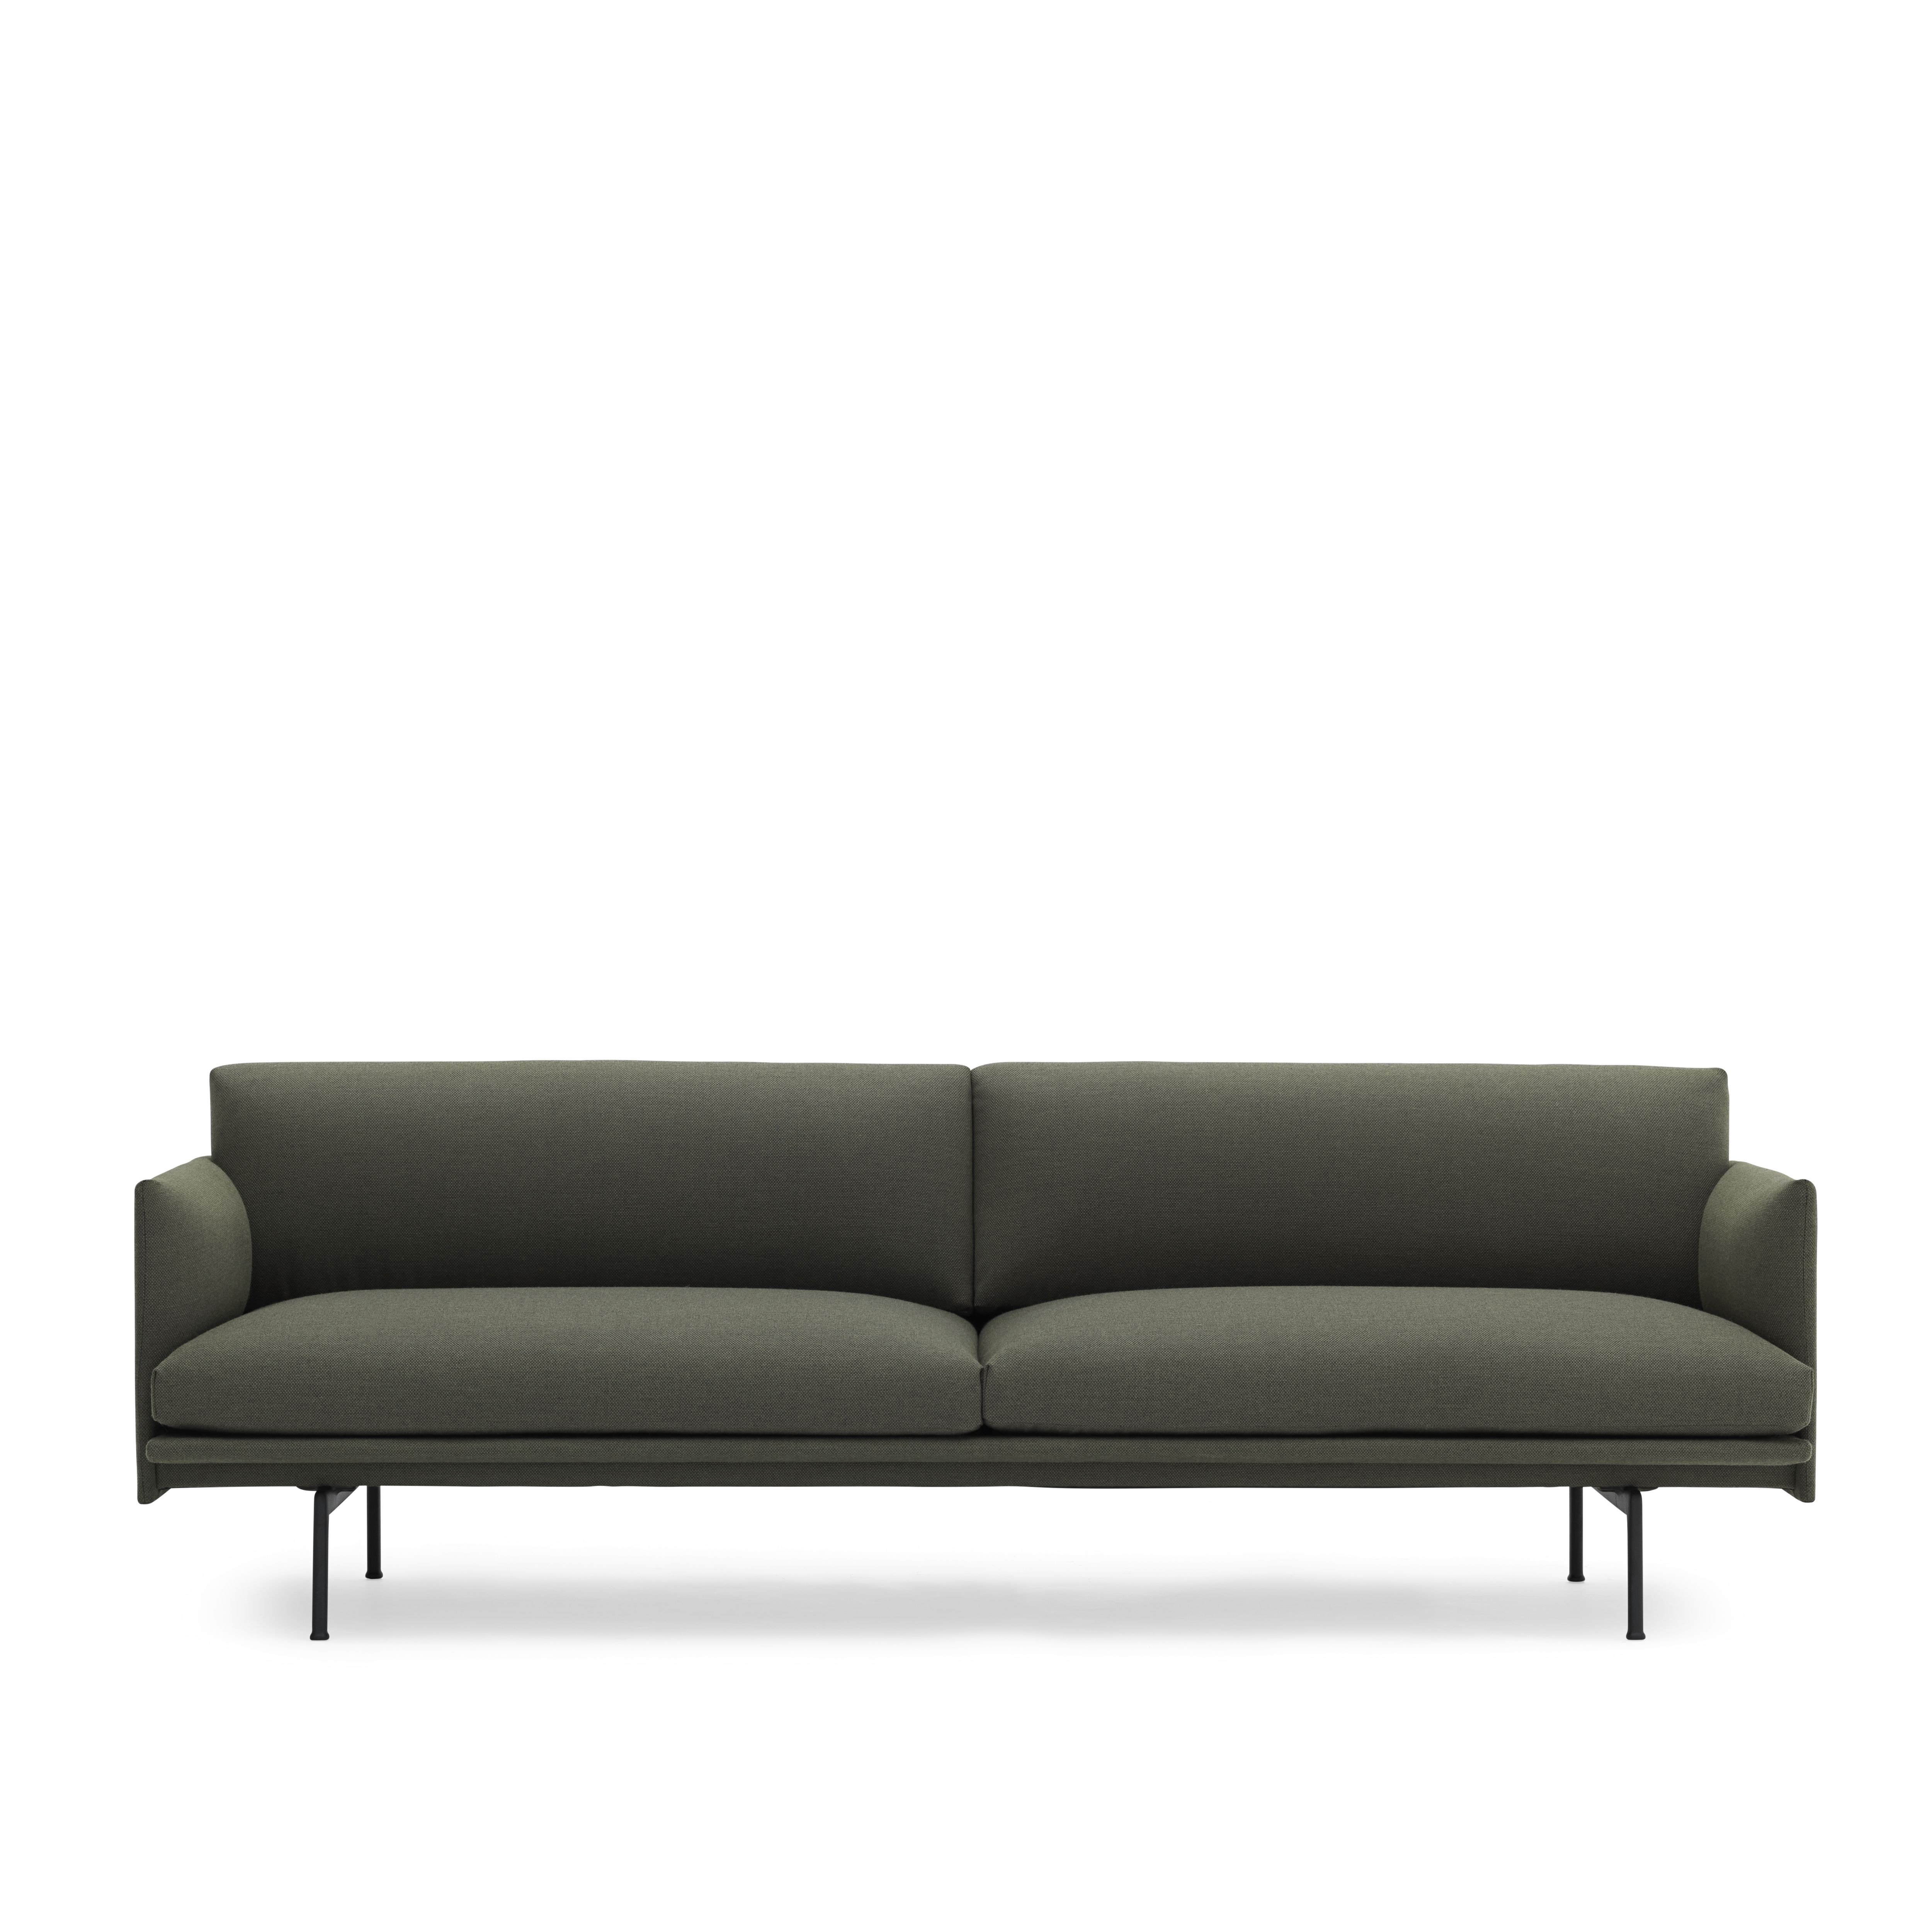 Interio Sofa Hay Outline 3 Seater In Fiord 961 Designed By Anderssen Voll For